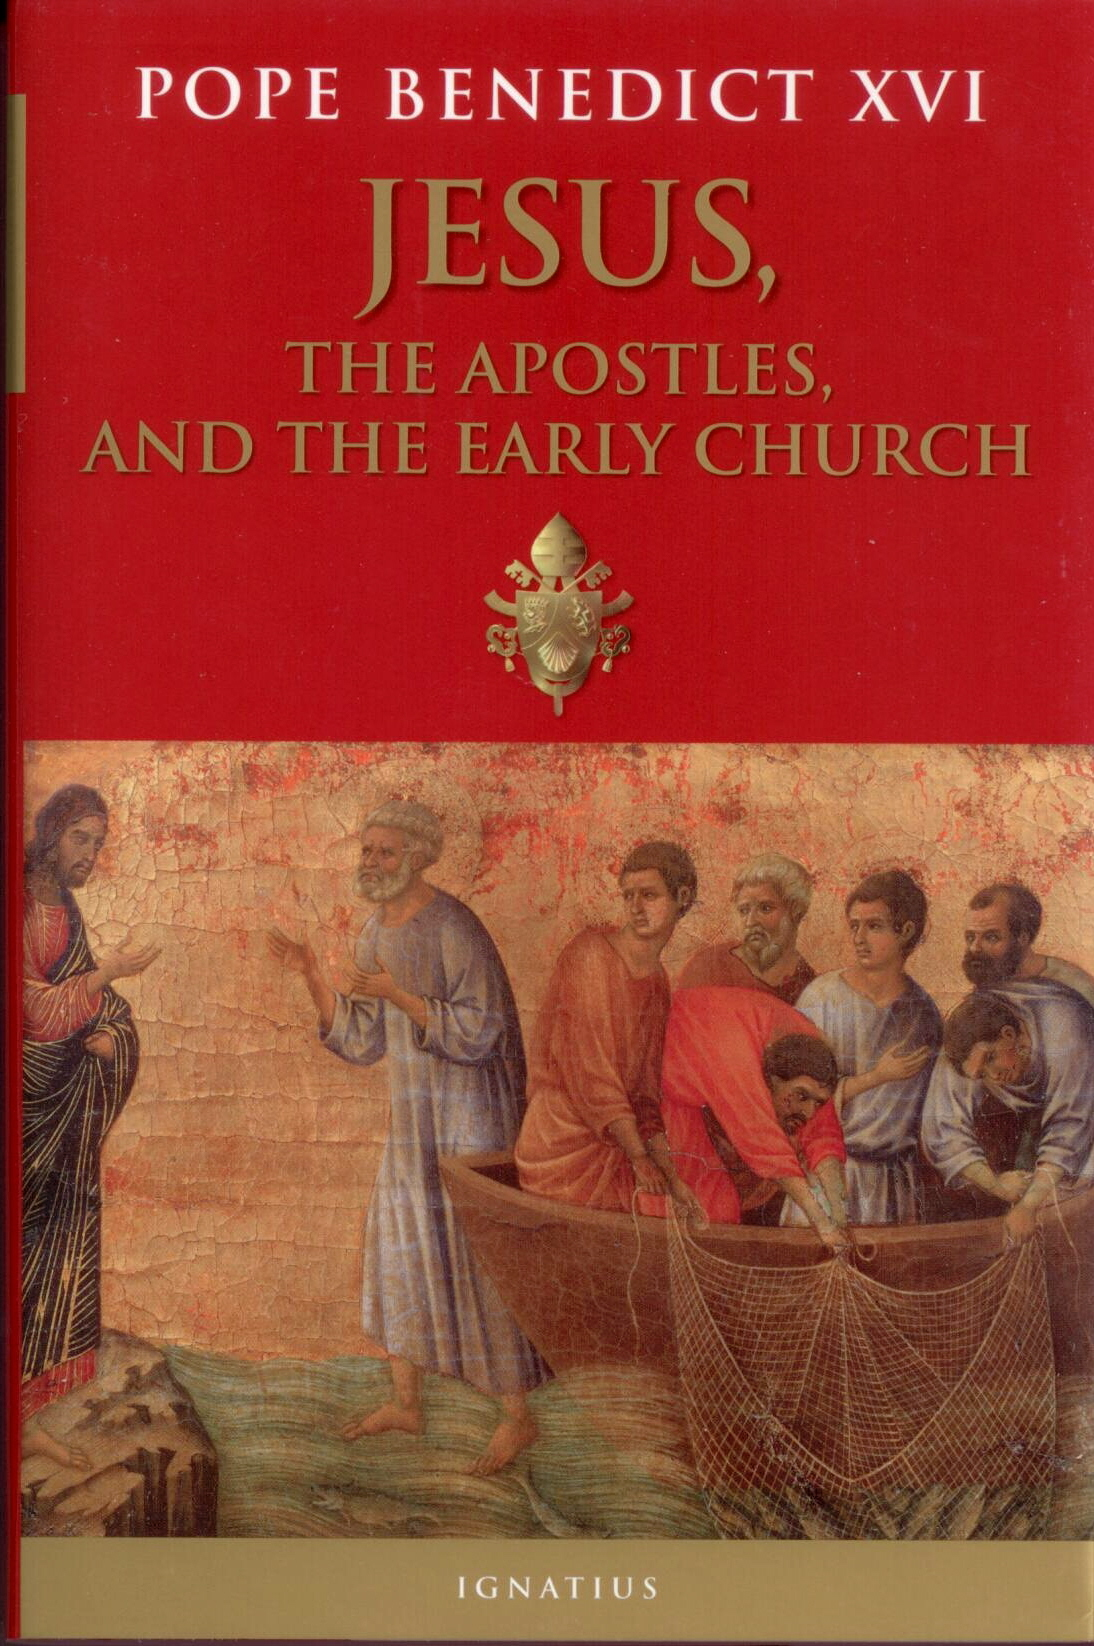 Jesus, the Apostles, and the Early Church by Joseph Ratzinger 9781586172206